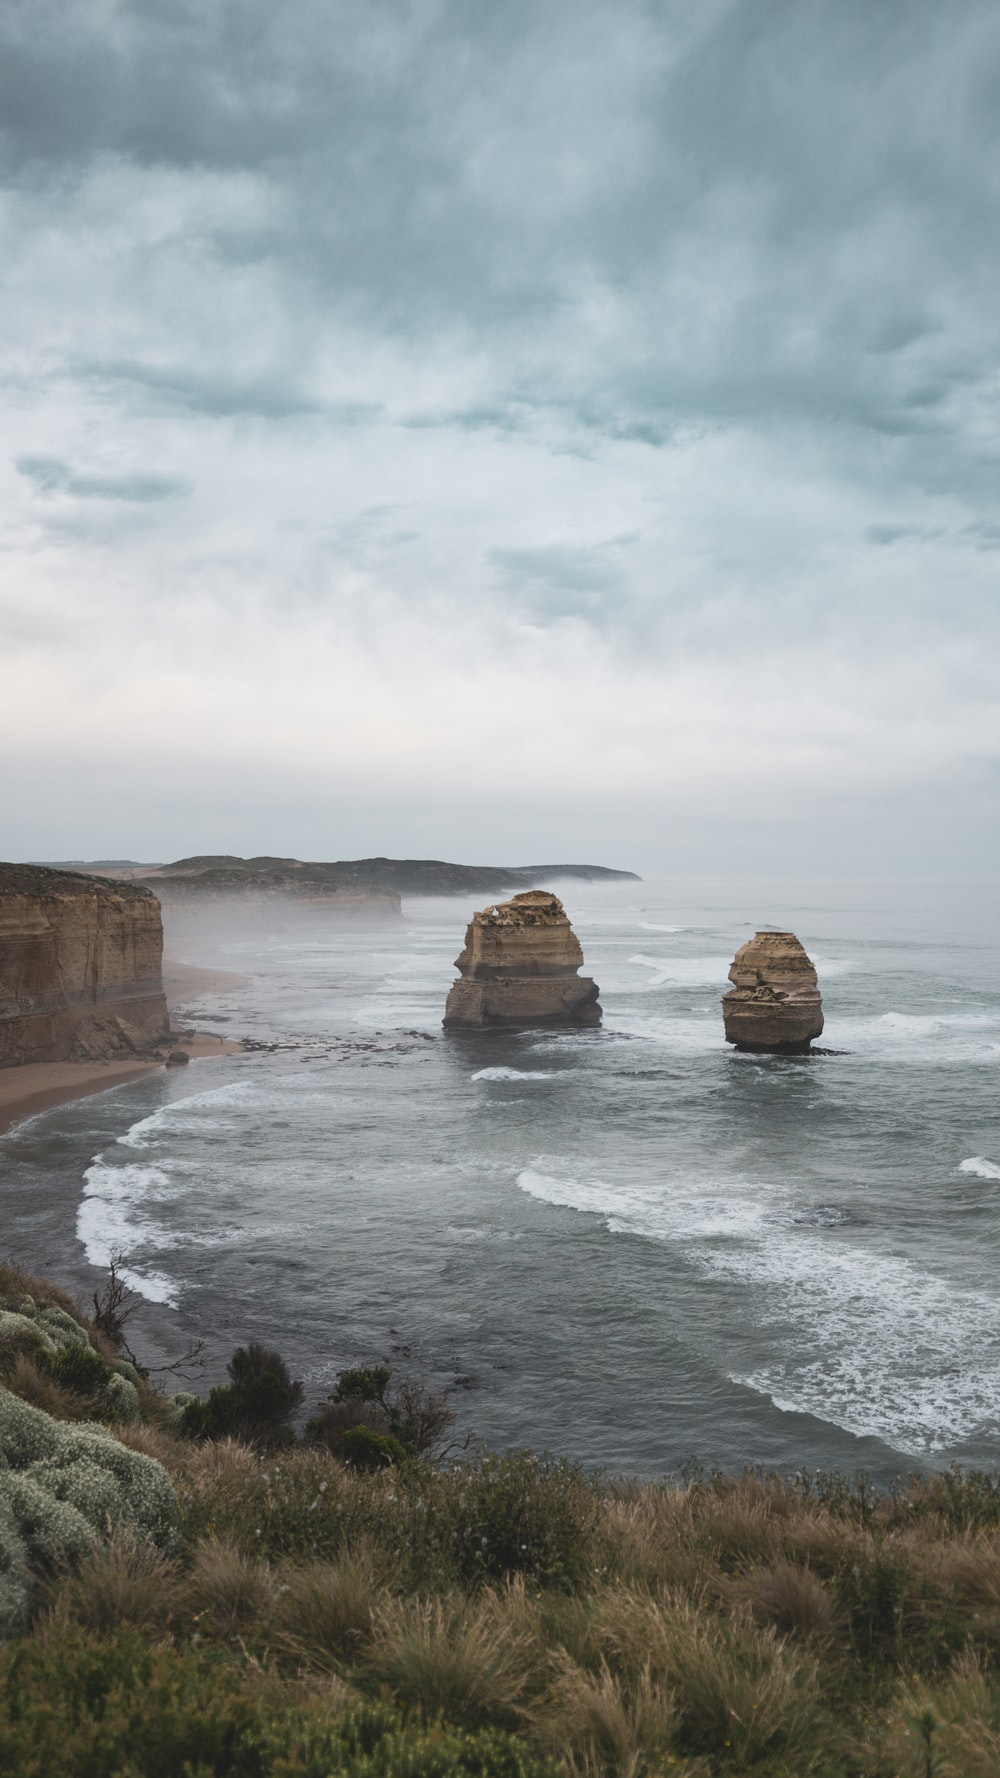 brown rock formation on sea under white clouds during daytime